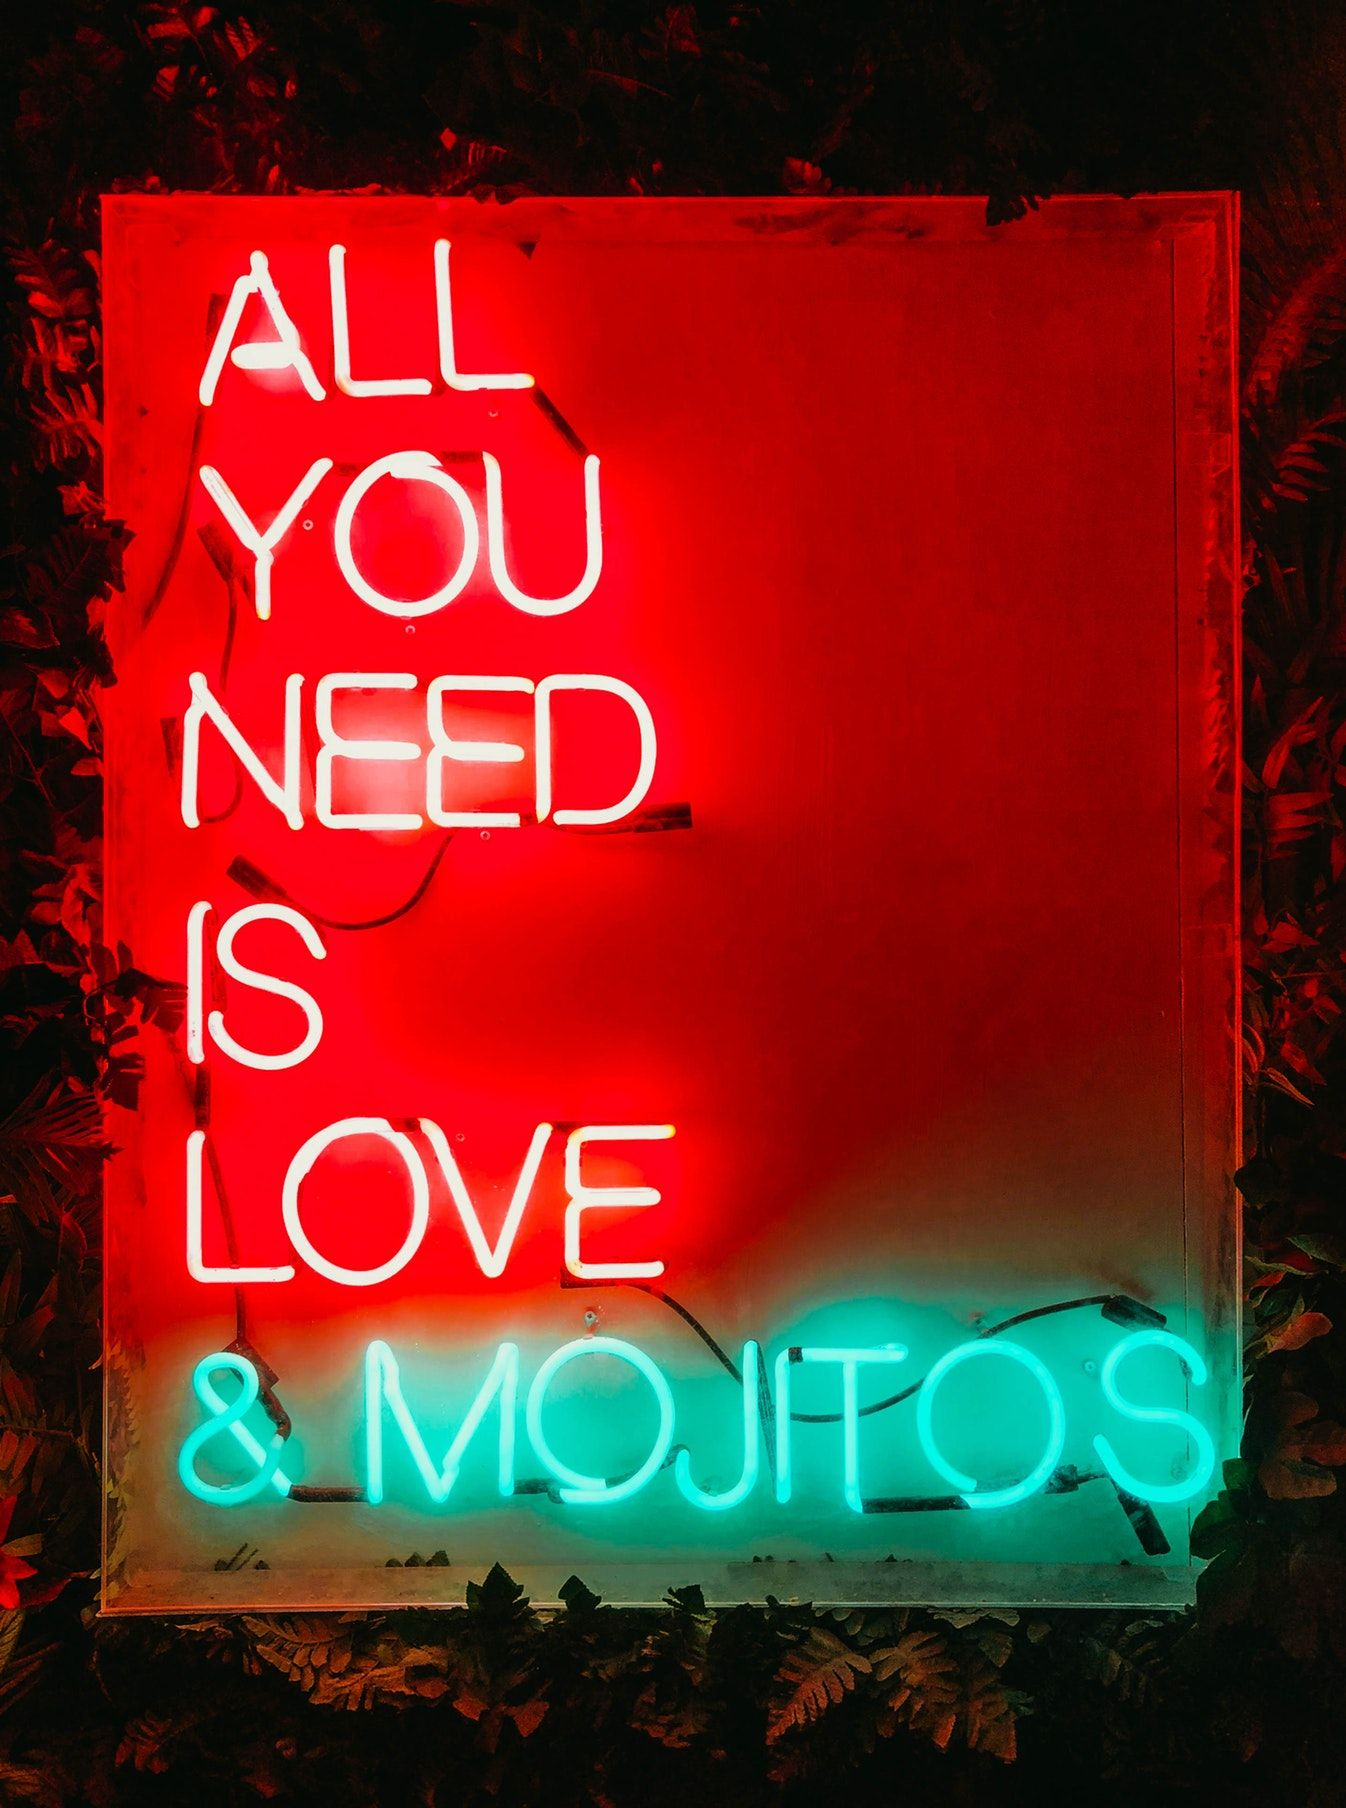 Red And Green All You Need Is Love And Mojitos Neon Sign With